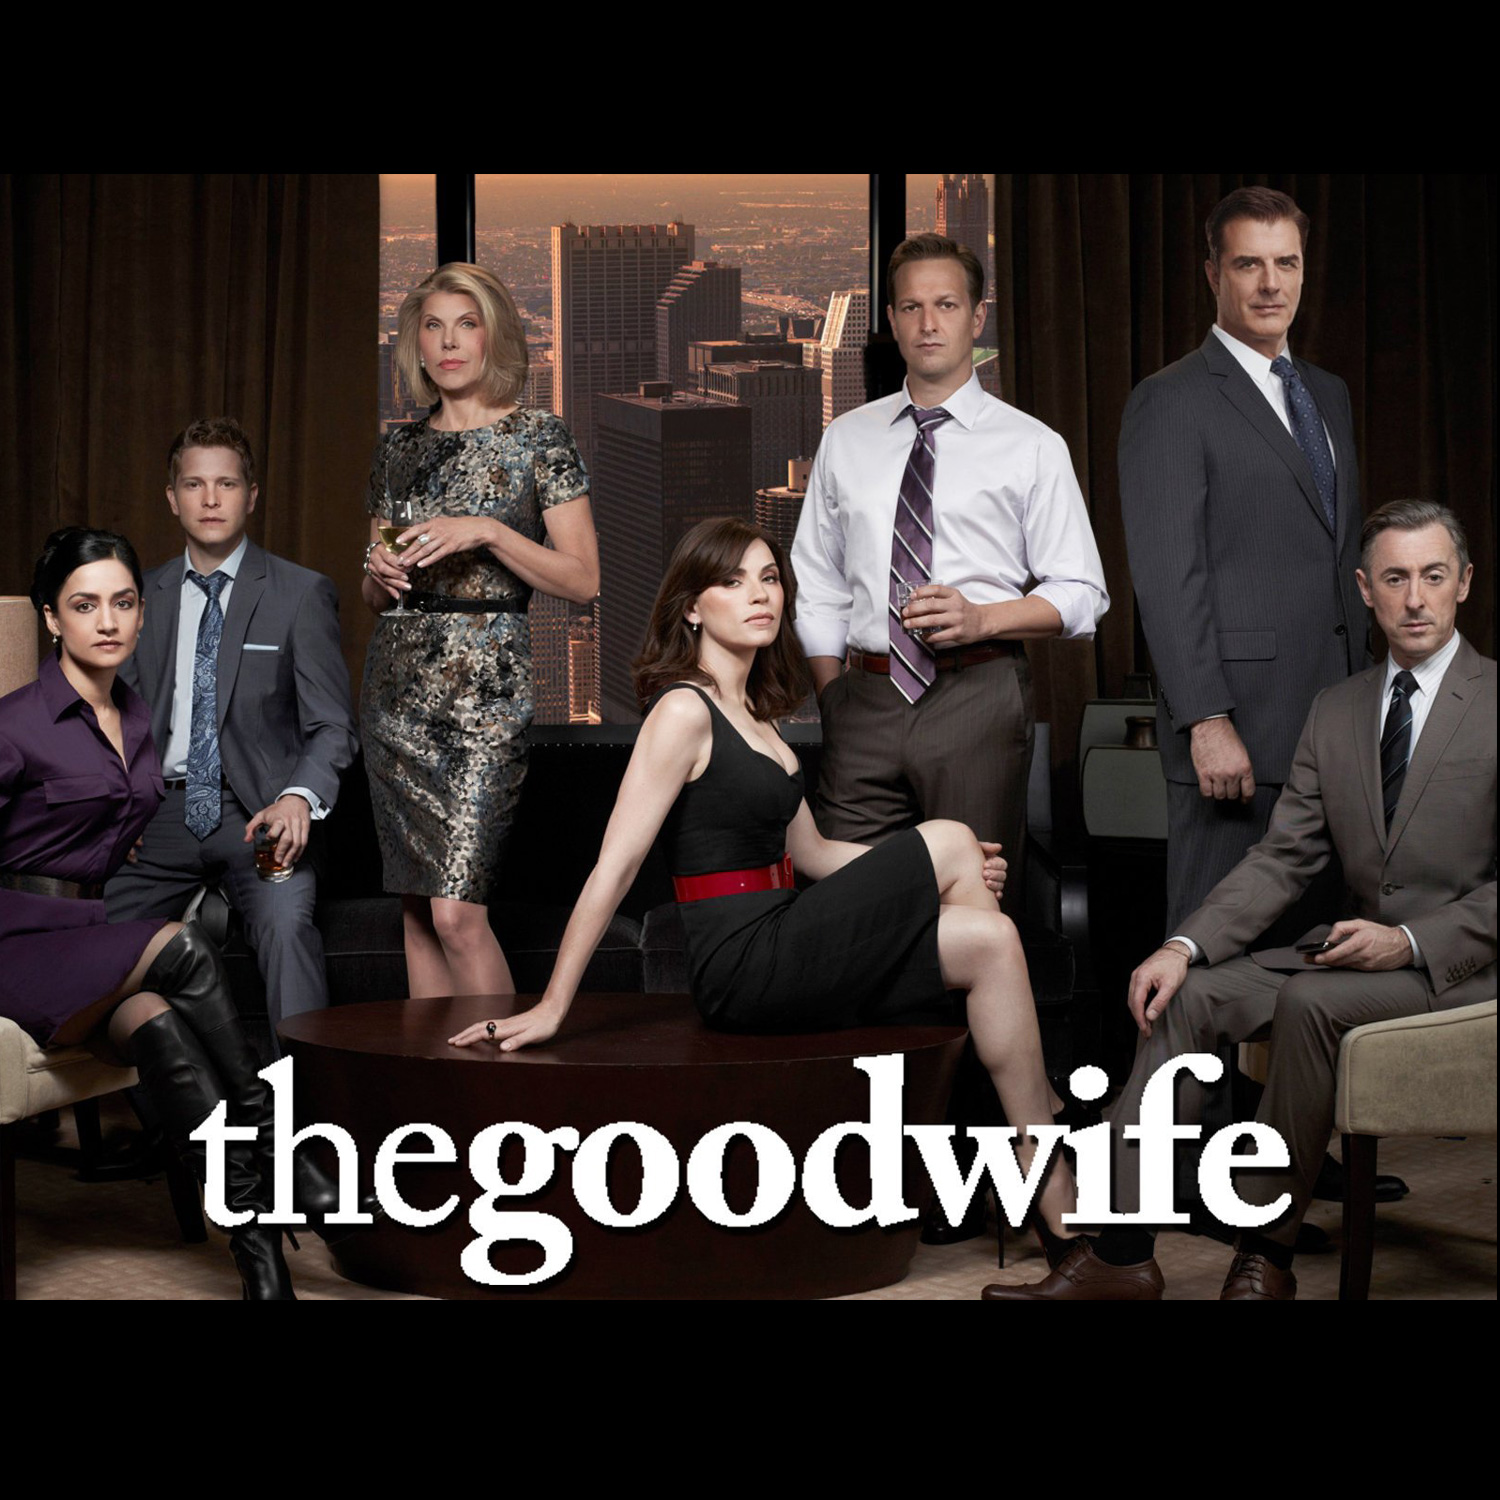 adr-goodwife.jpg